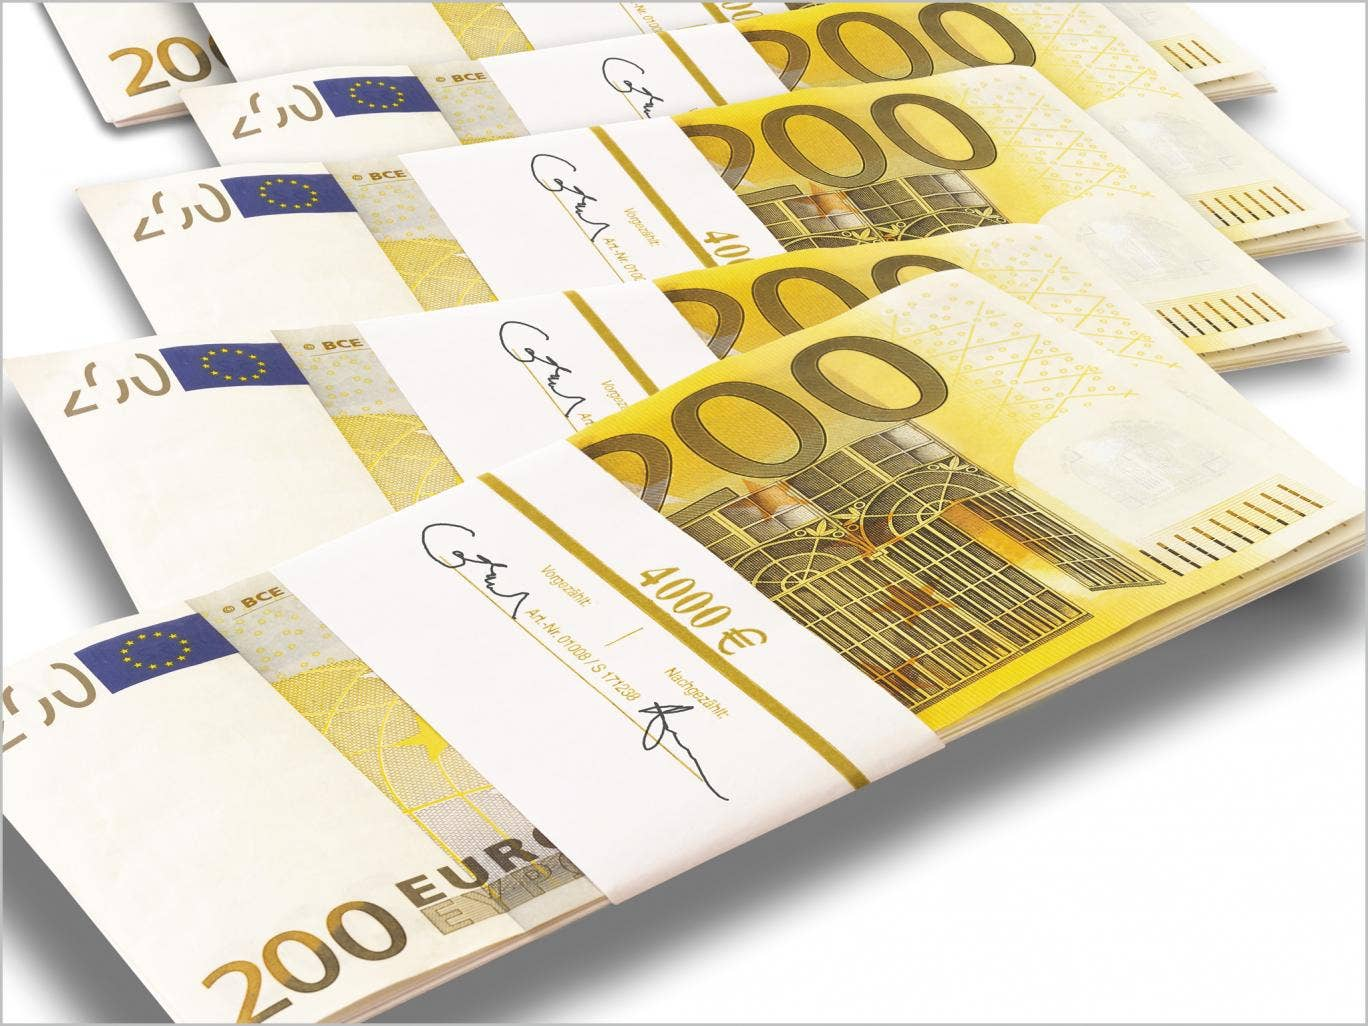 The €200 note became a favourite for money-launderers